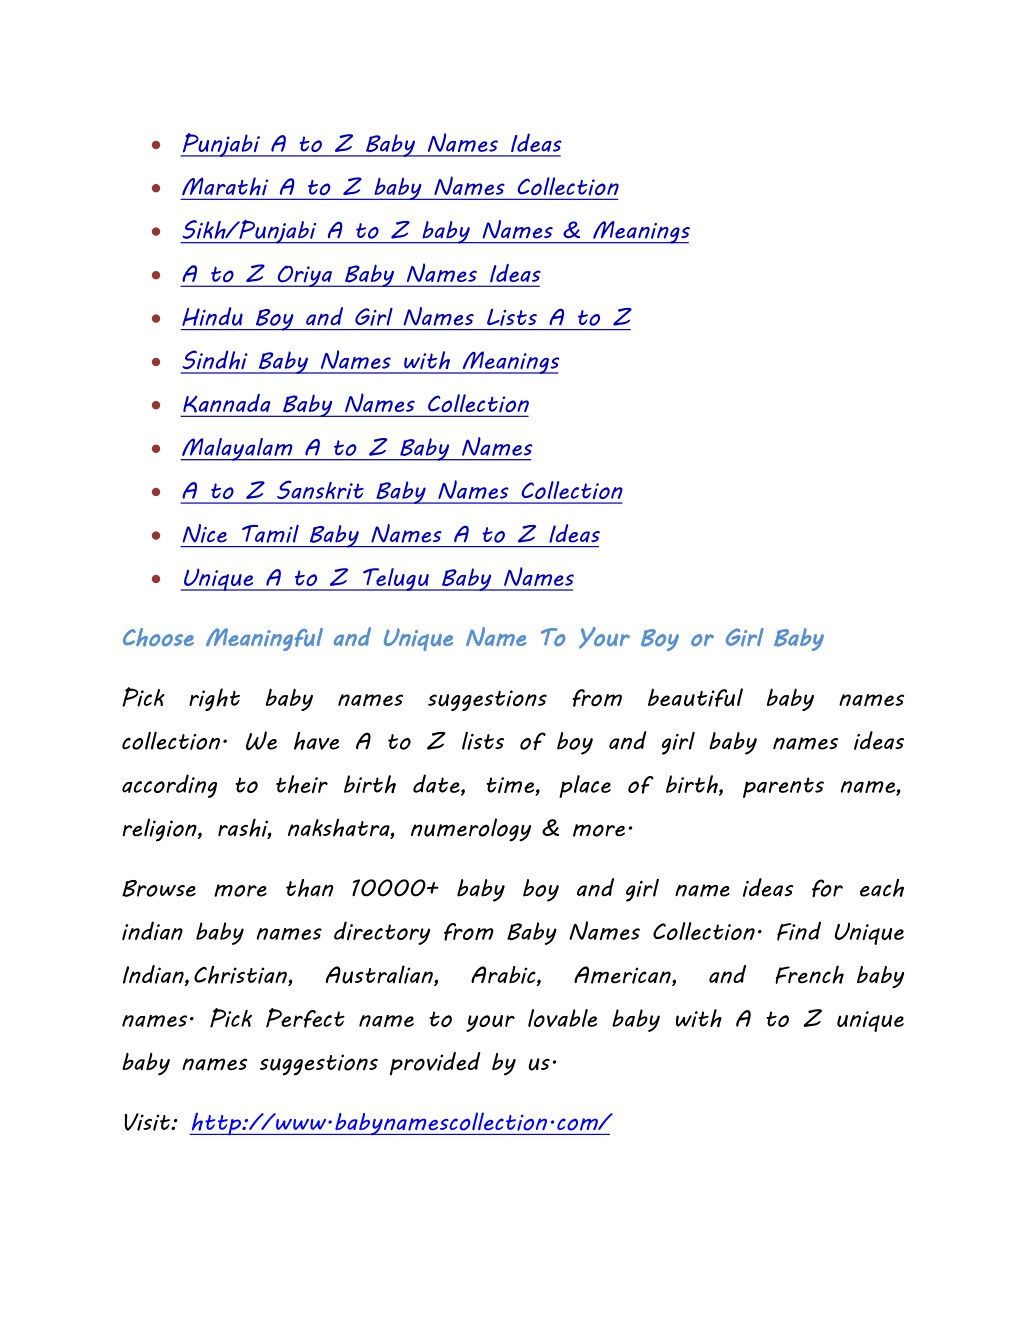 PPT - Popular A to Z Unique Indian Baby Names Lists with